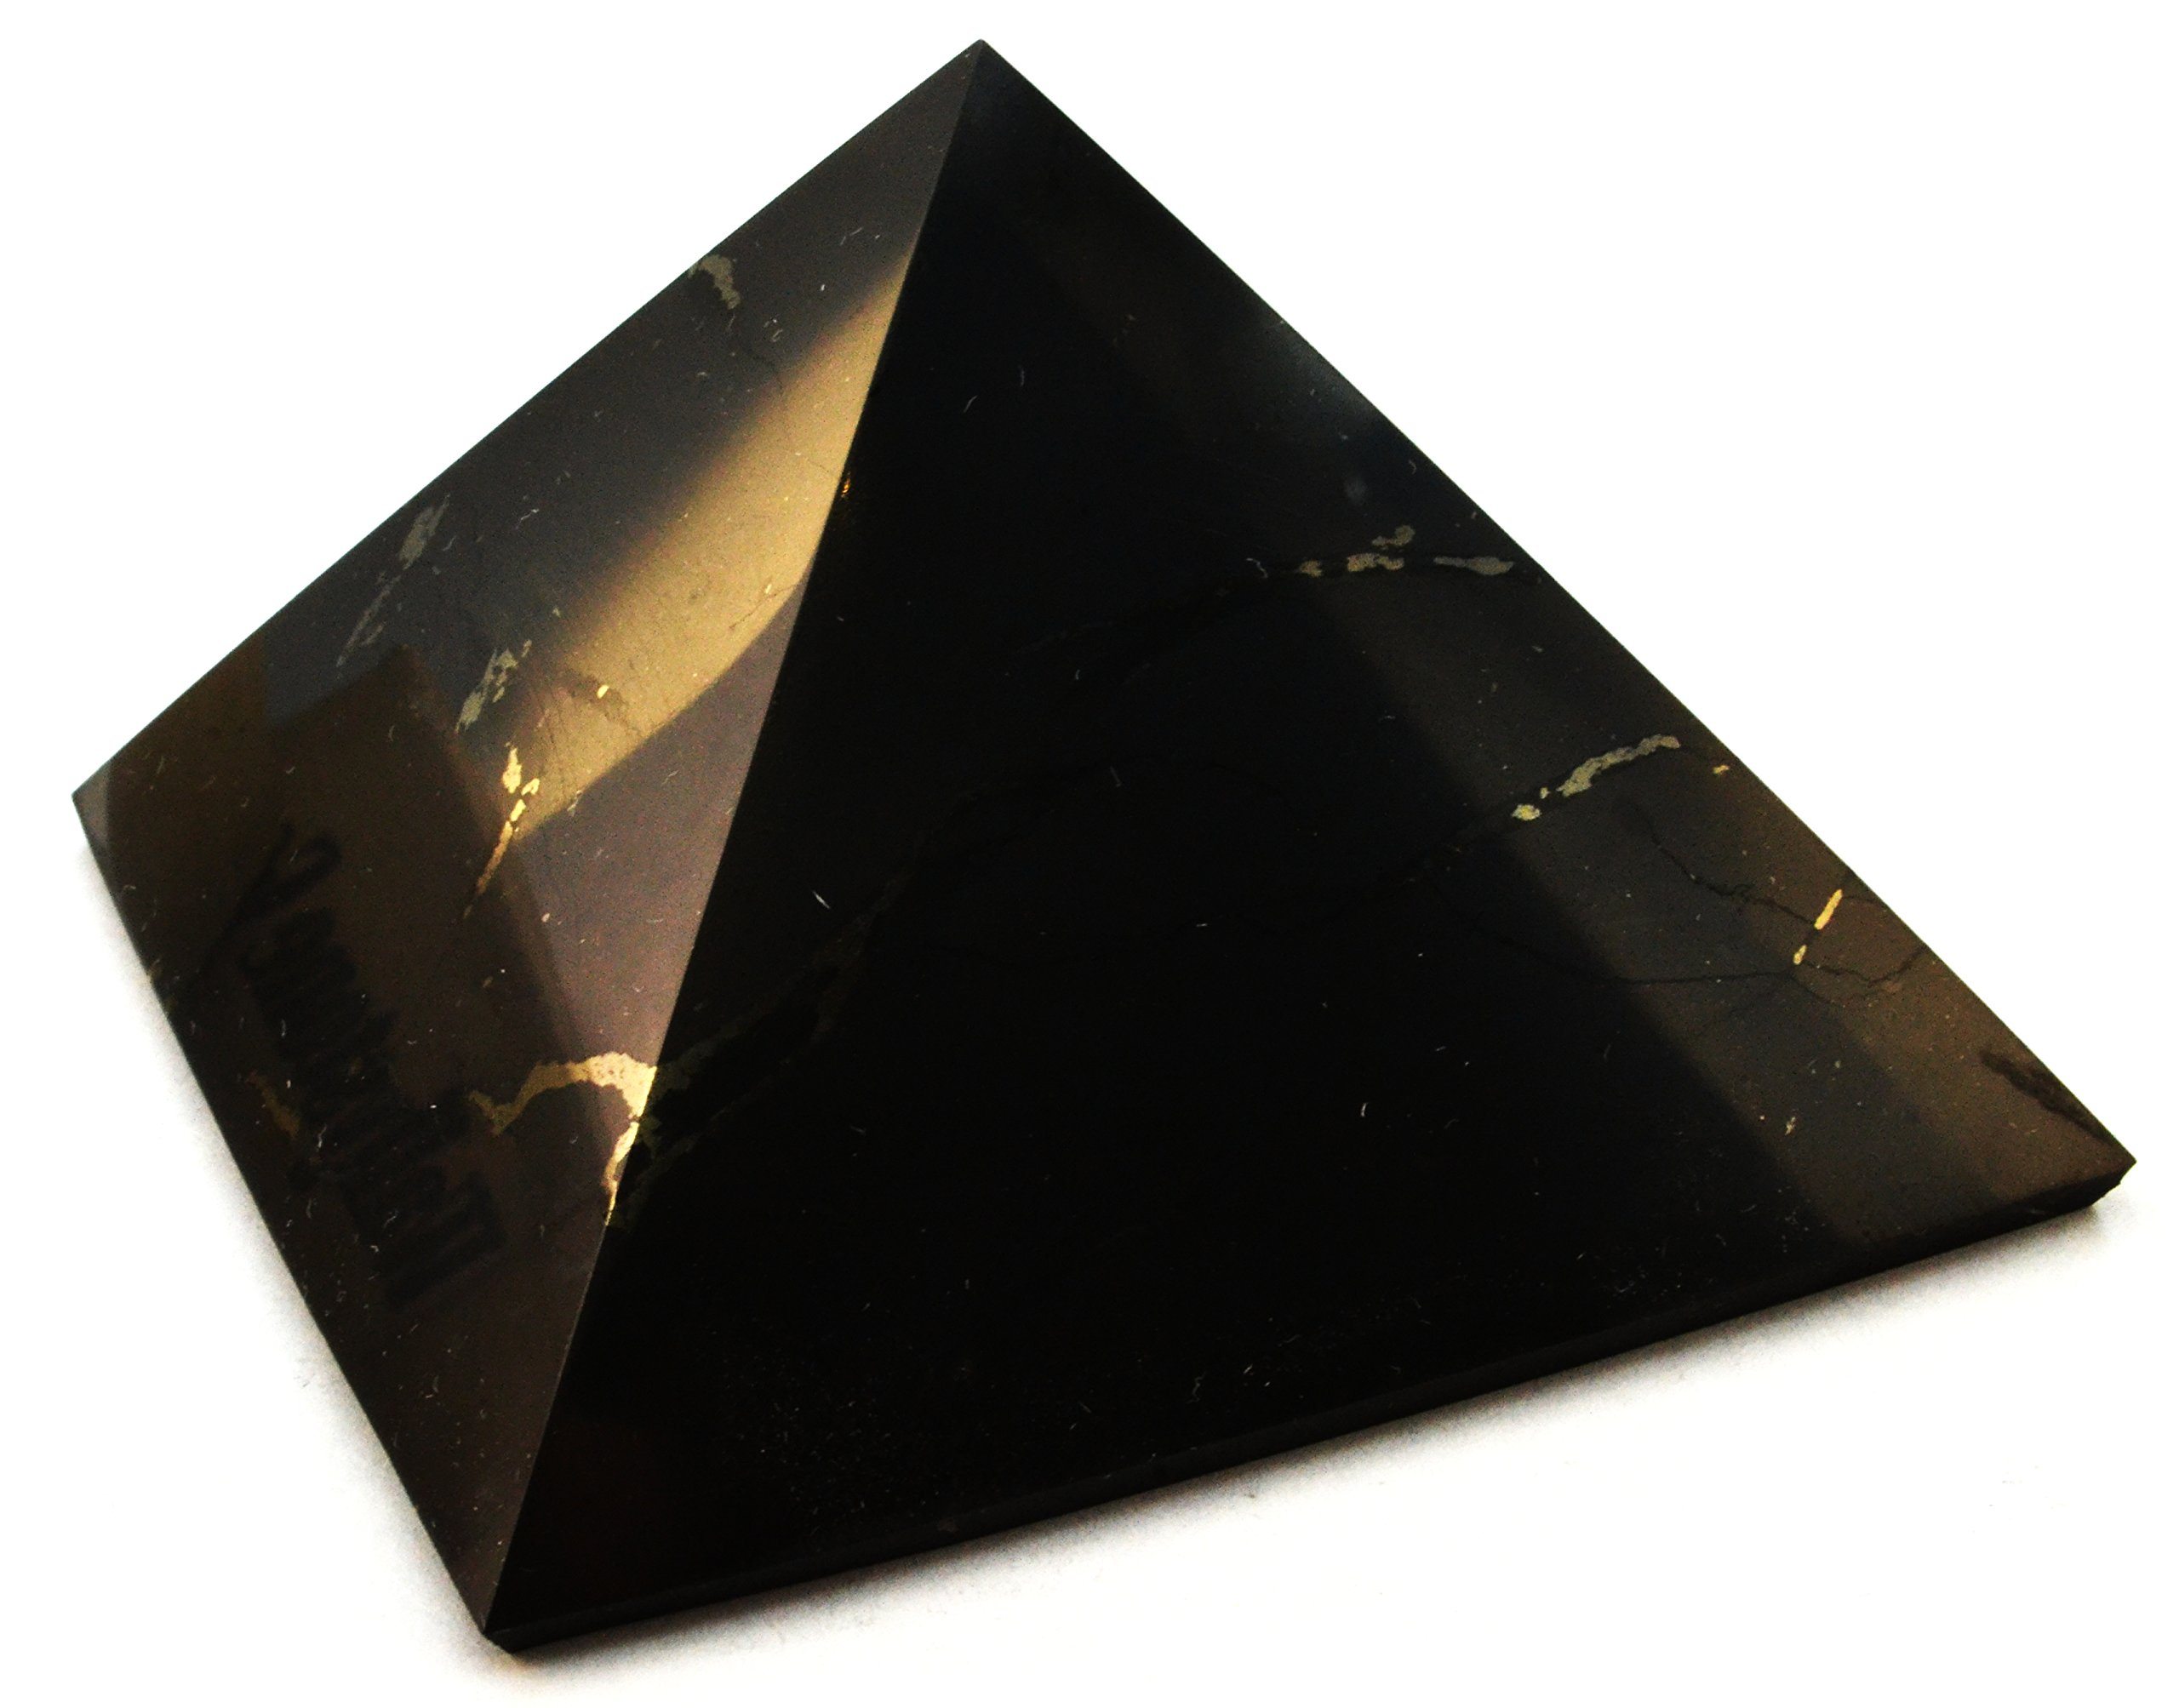 Keled Rocks Shungite Pyramid Polished Natural Shungites Stone 3''